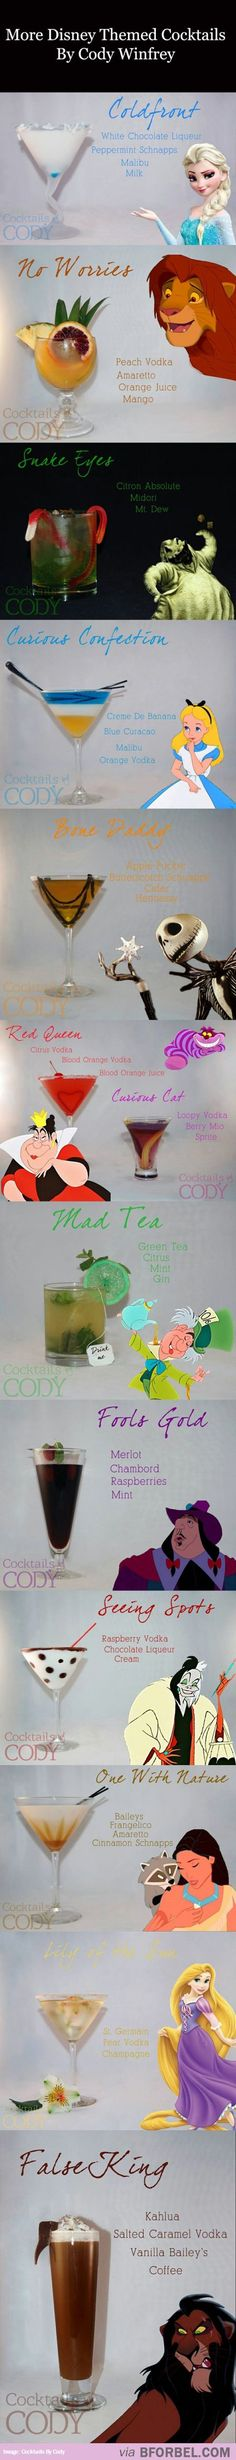 I don't care for Disney themed alcoholic things, but some of these recipes are worth pinning